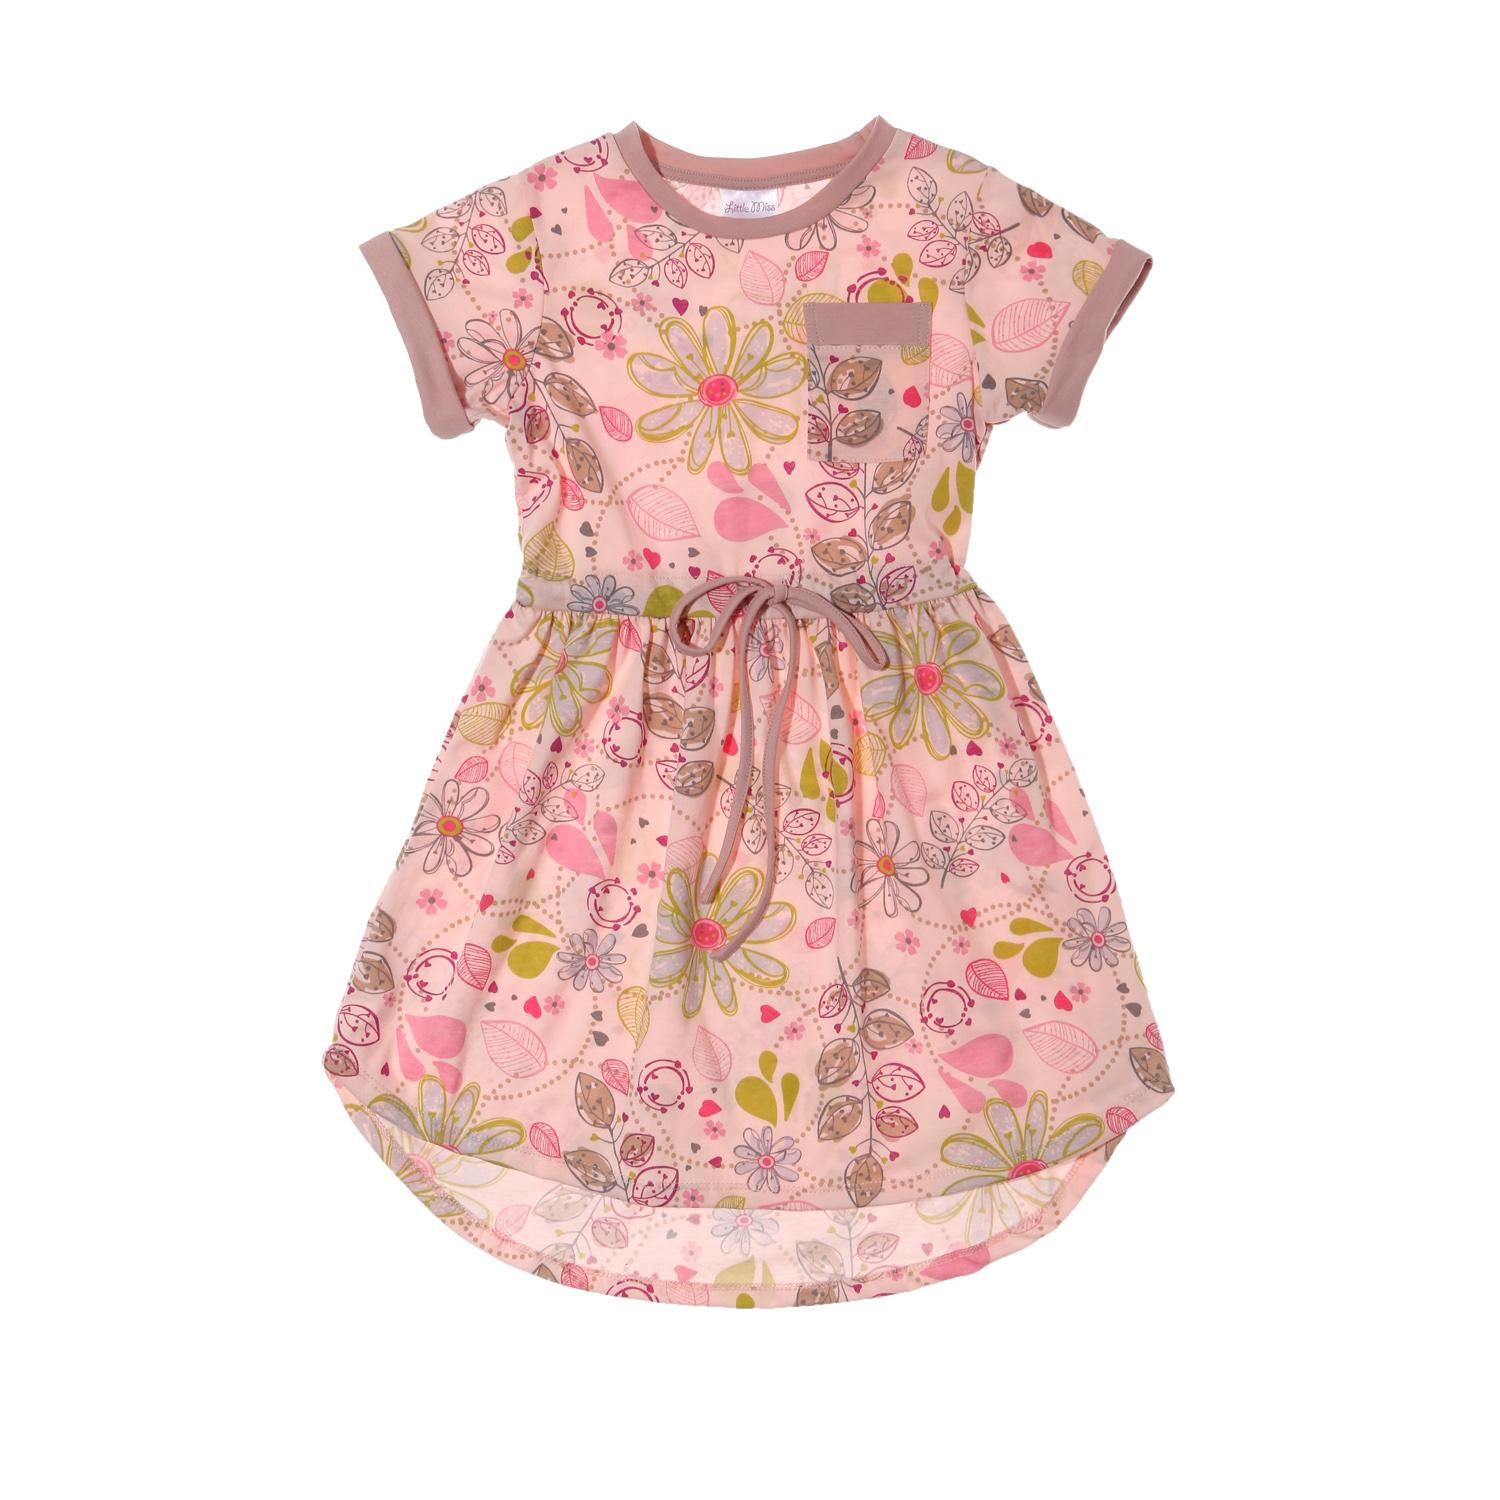 f25a95930 Girls Dresses for sale - Baby Dresses for Girls online brands ...